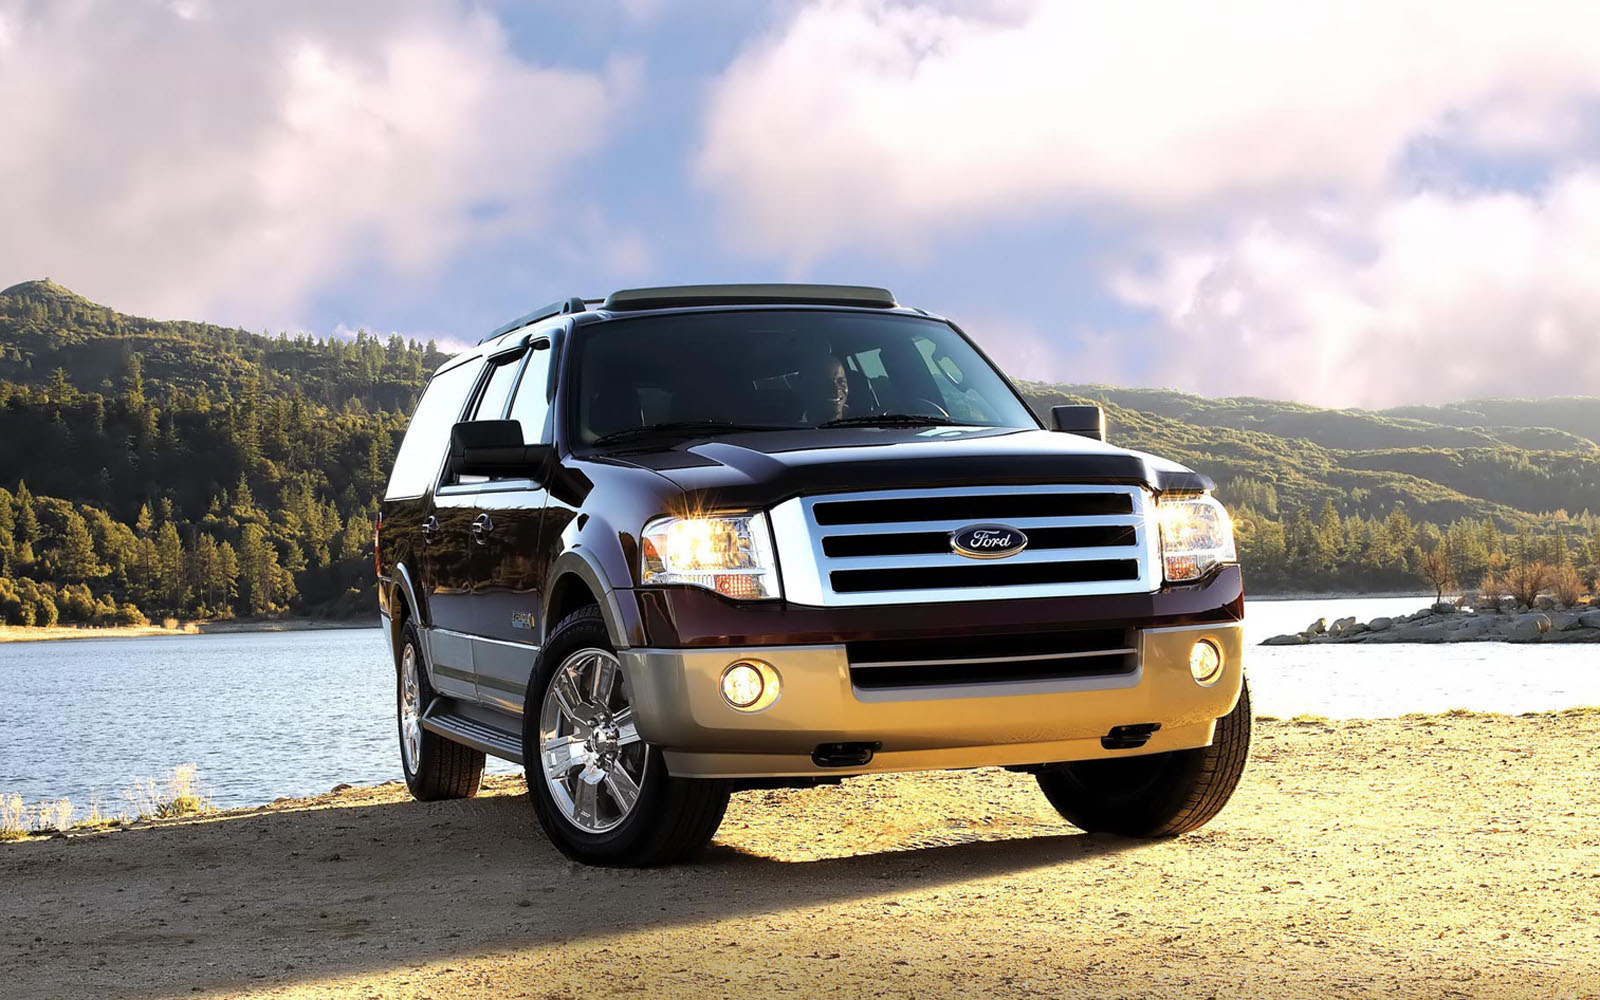 3d Hd Scenery Wallpapers Wallpapers Ford Expedition Suv Car Wallpapers